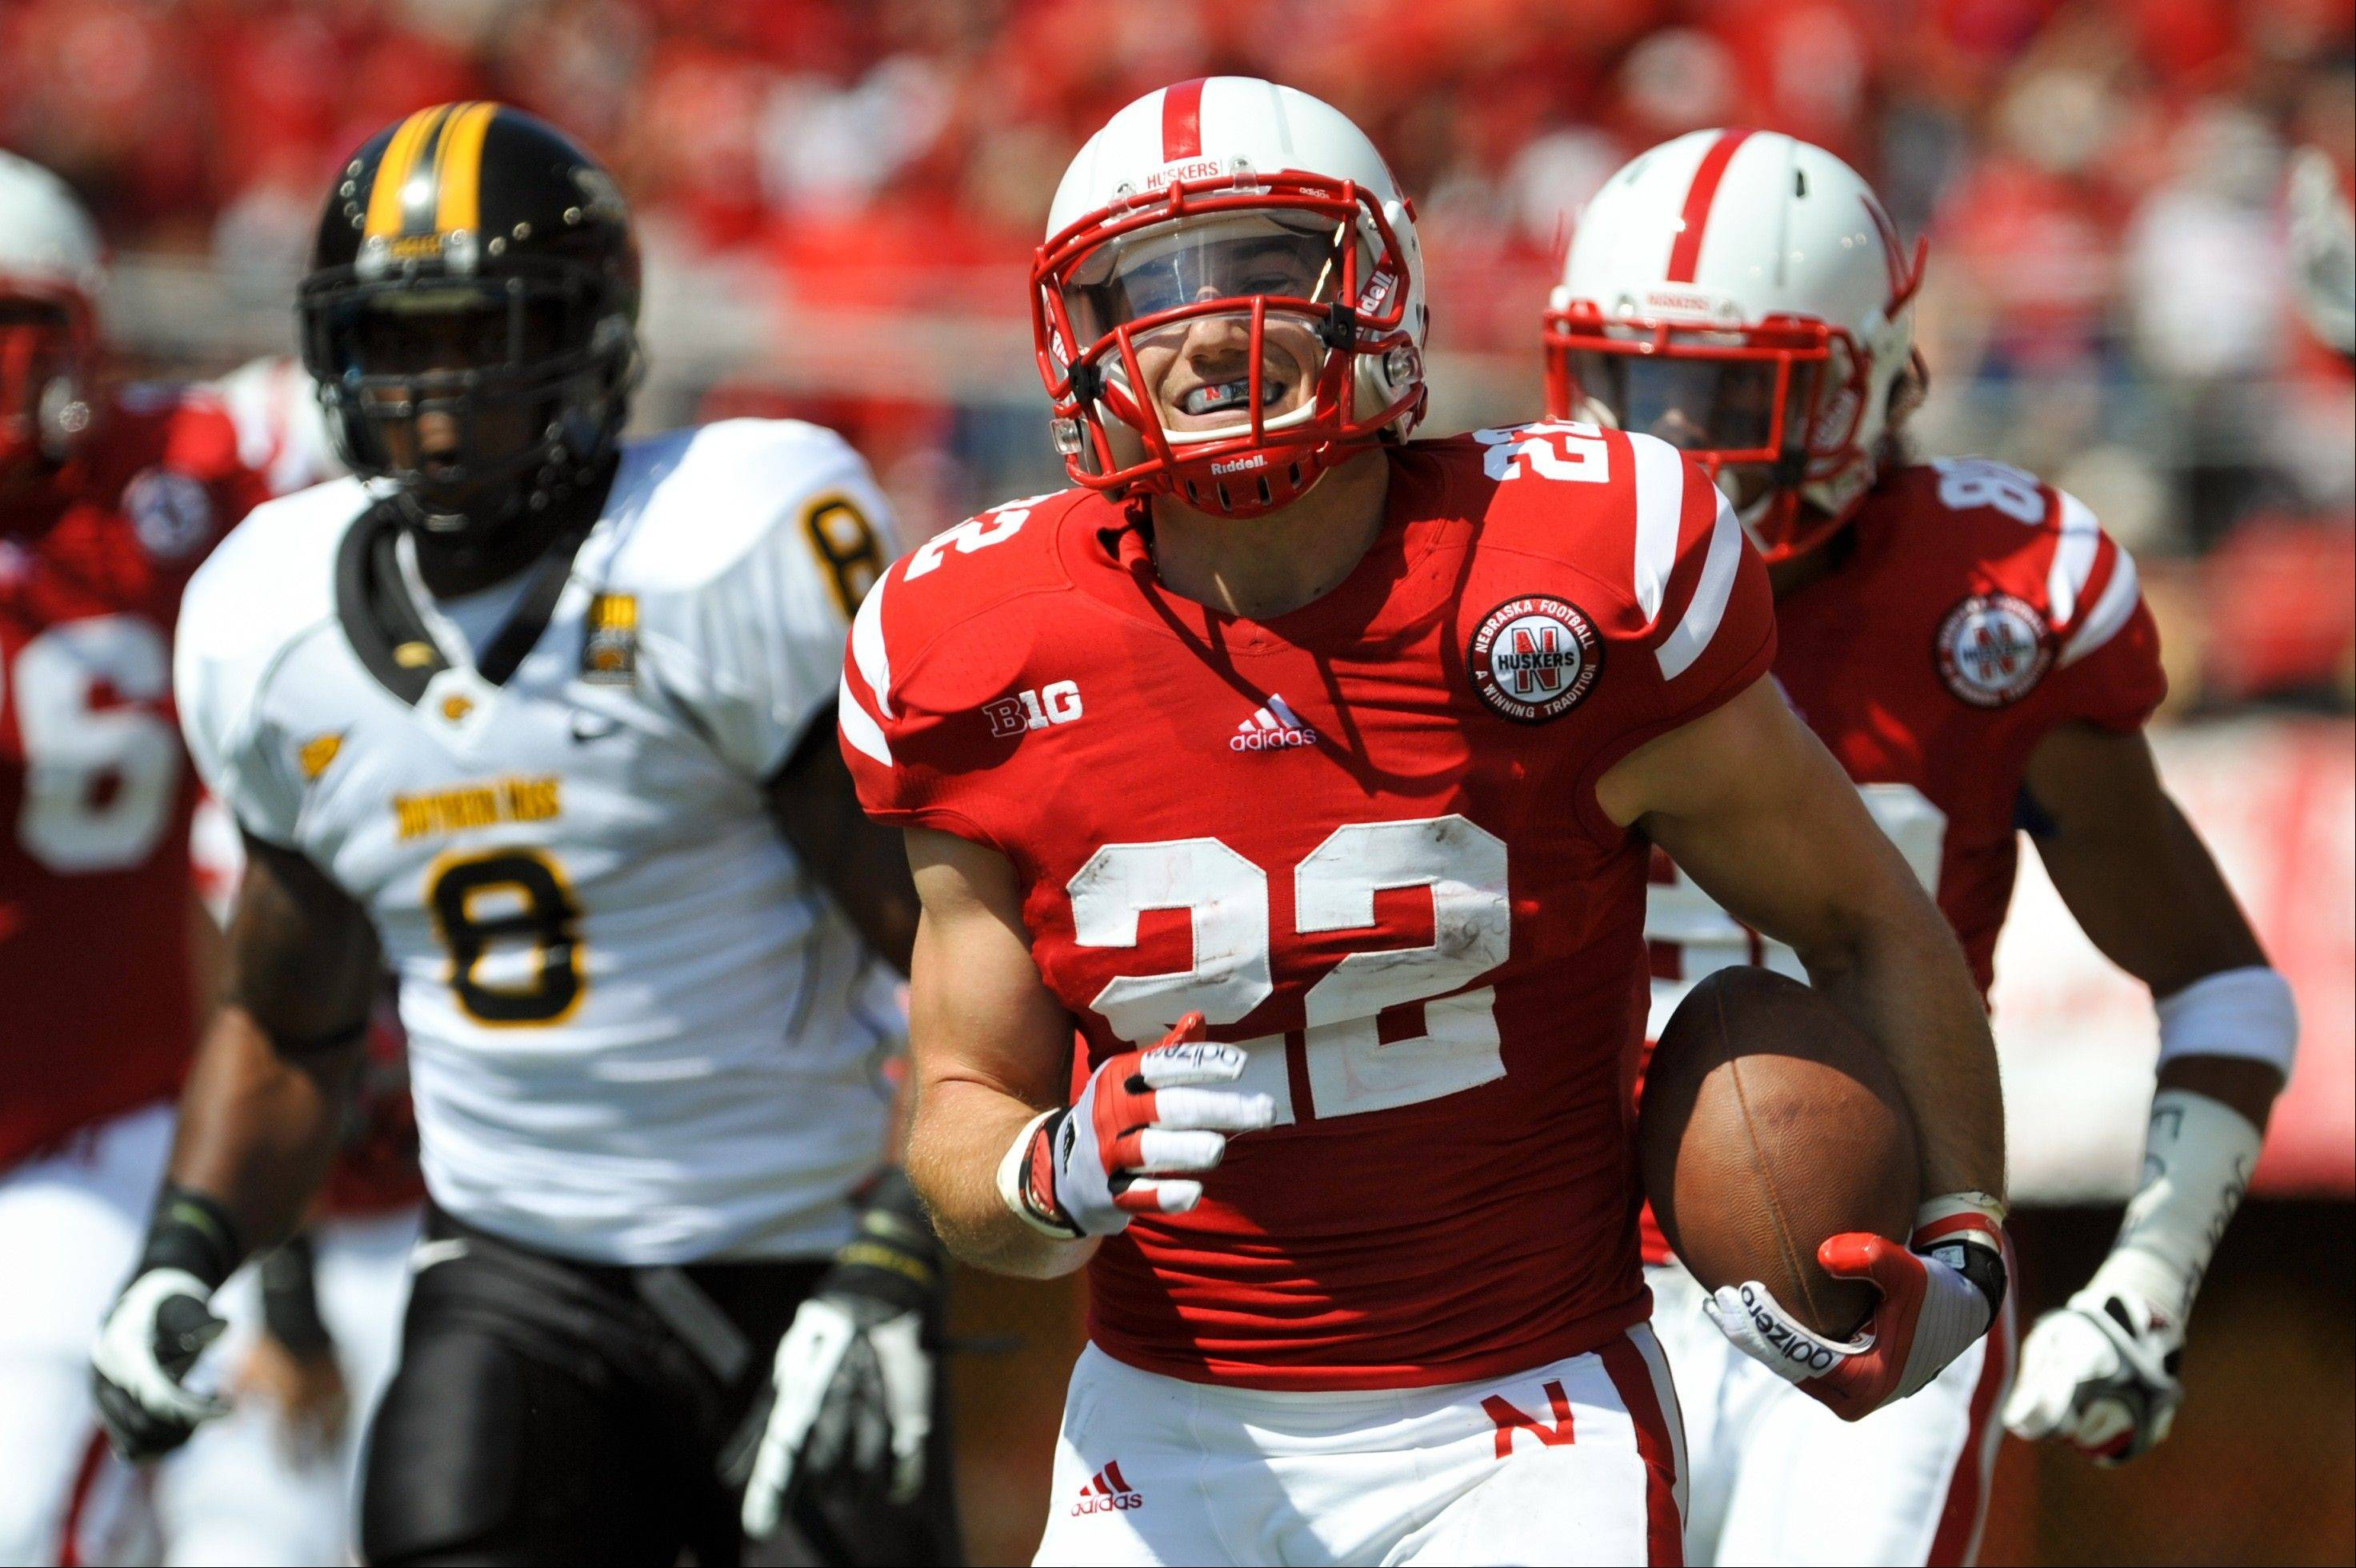 Nebraska's Rex Burkhead runs 57 yards for a touchdown against Southern Miss on Sept. 1. He's missed the last two games with a sprained ligament.